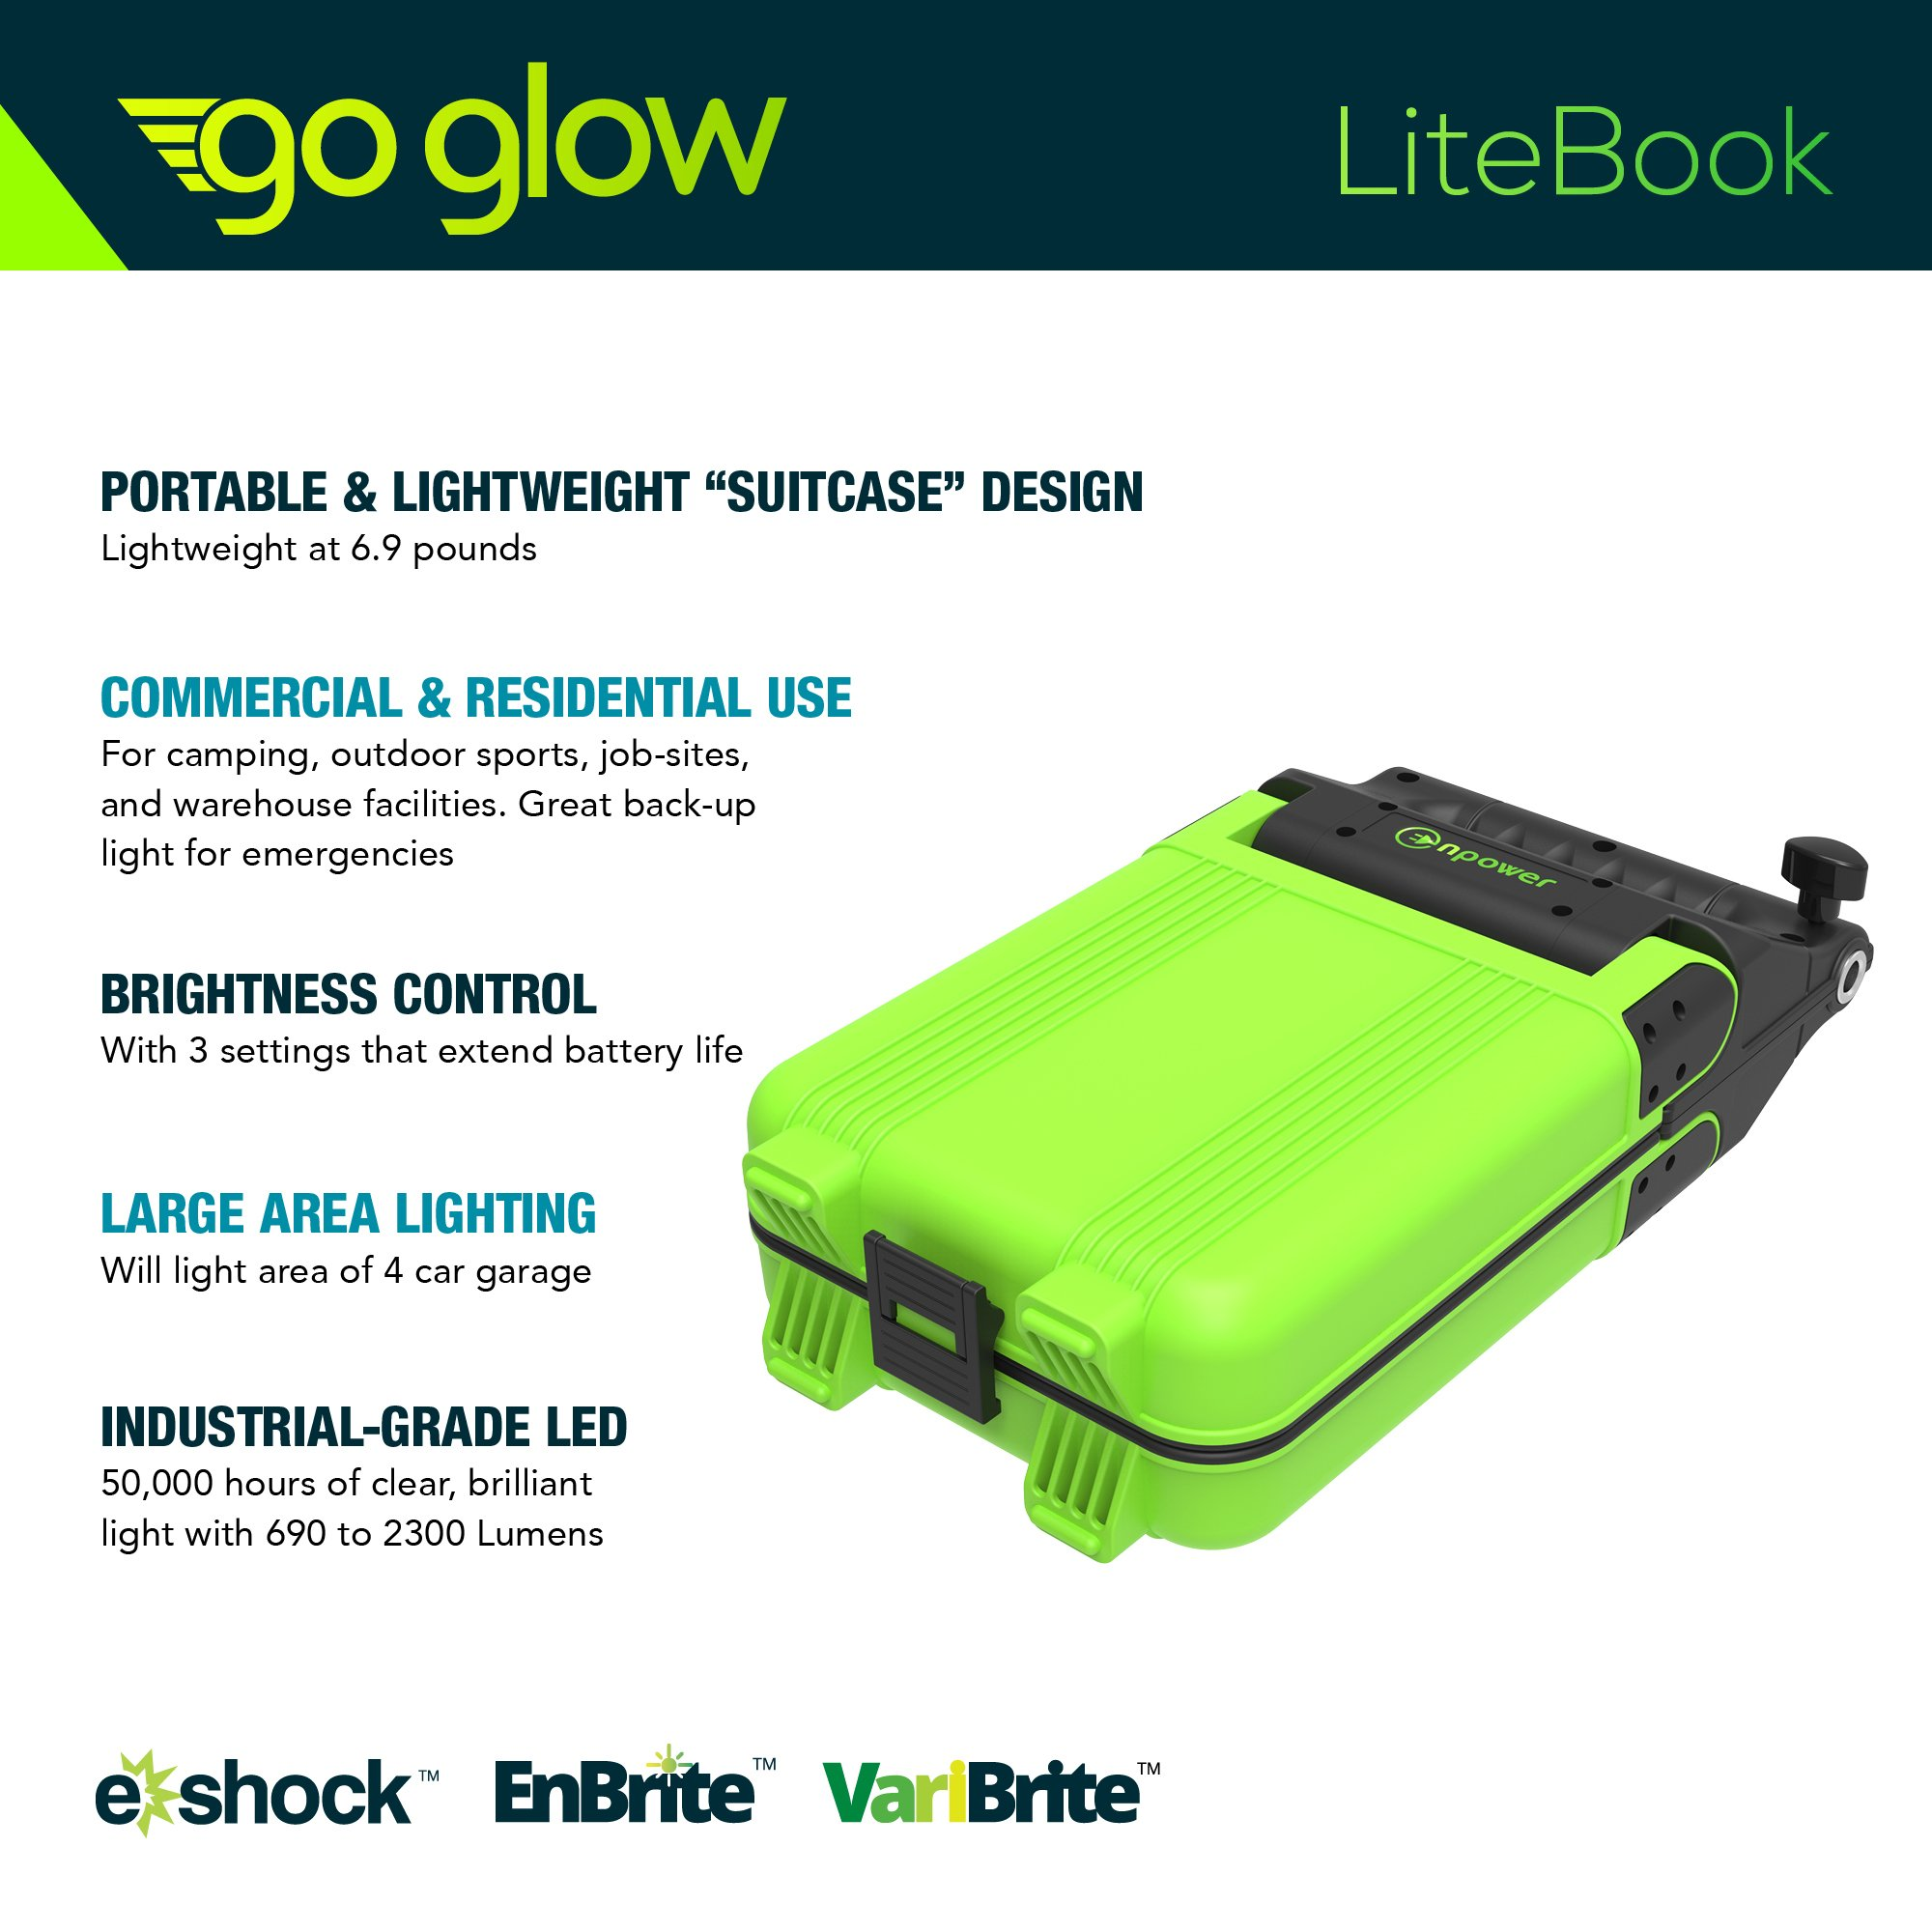 GoGlow LiteBook Bundle - Upgraded 2.0 TRIPOD INCLUDED - 30W Portable Rechargeable Day Light White Light (5000-5500k) Work Light, Camping, Garage or Auto Repair, Emergency (Green) by Enpower (Image #3)